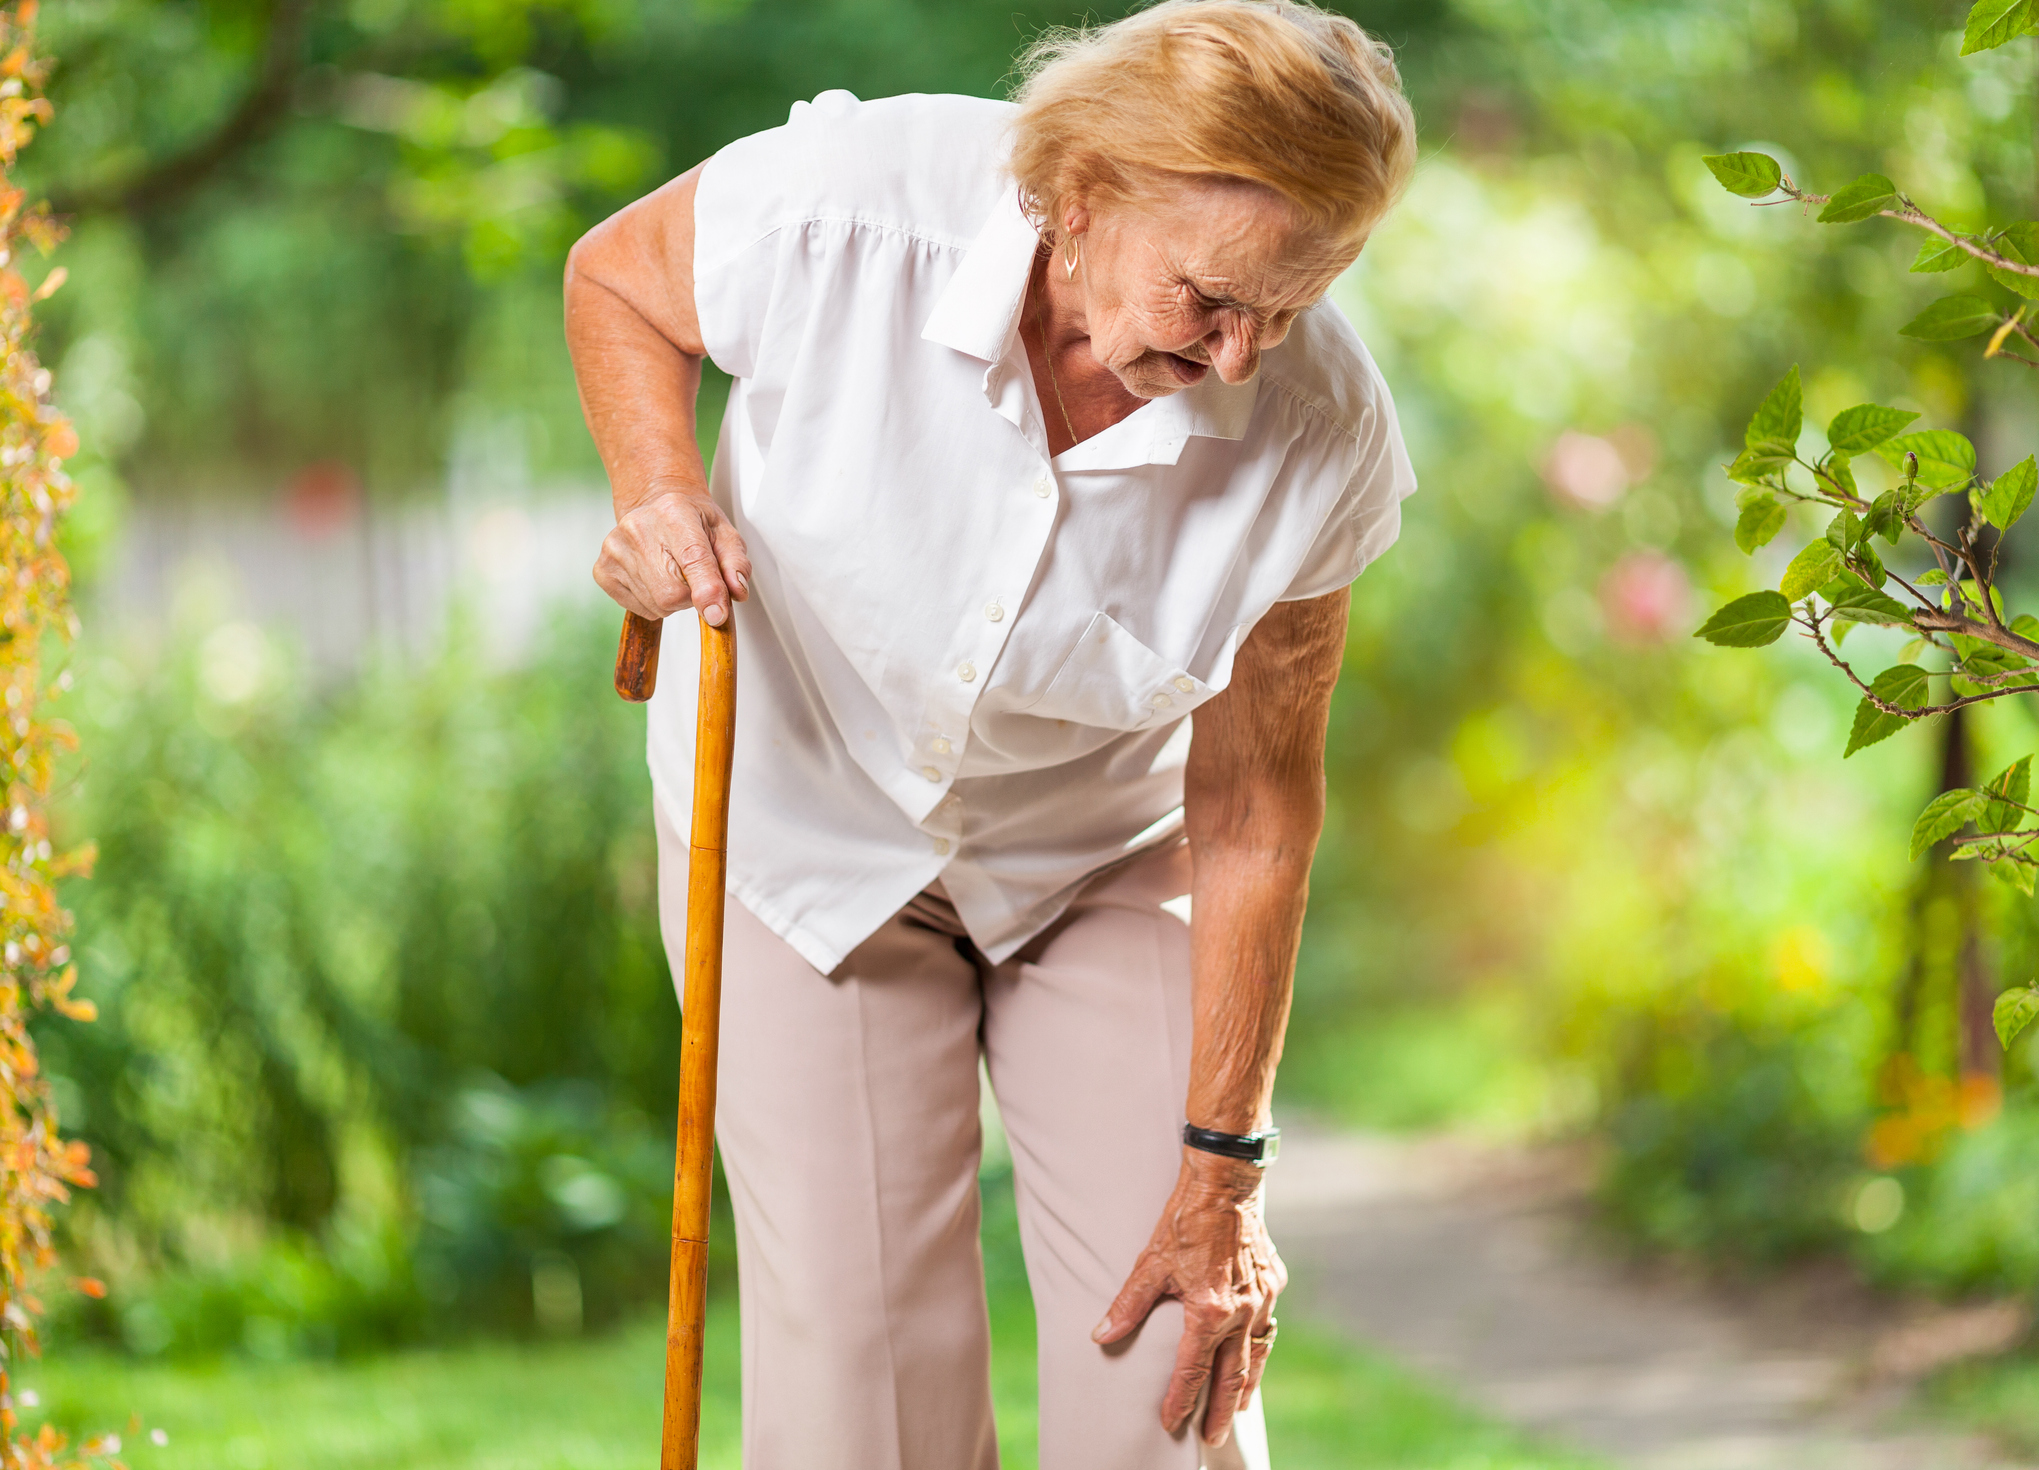 Elderly joint pain from osteoarthritis increases fall risks.